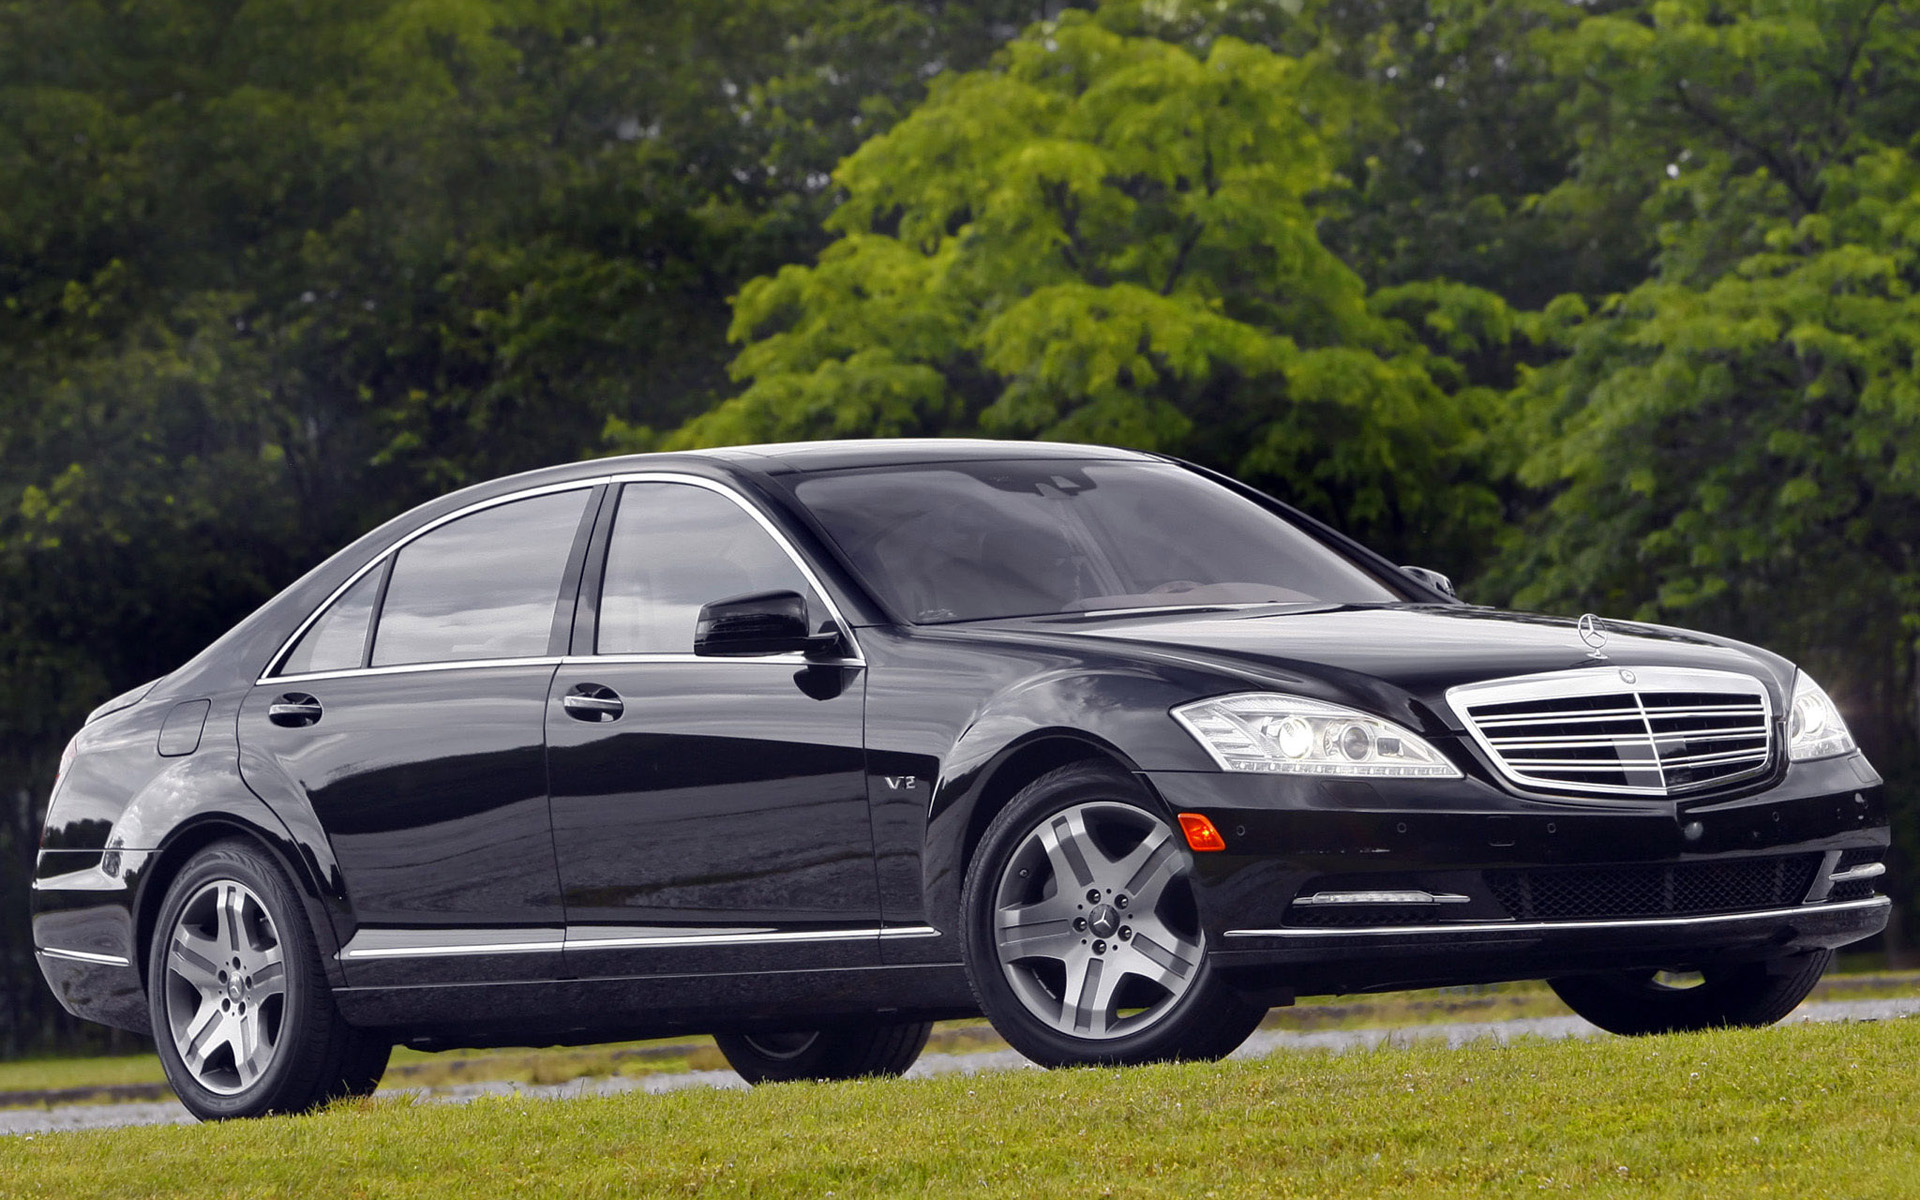 mercedes benz usa 9 wide car wallpaper. Cars Review. Best American Auto & Cars Review